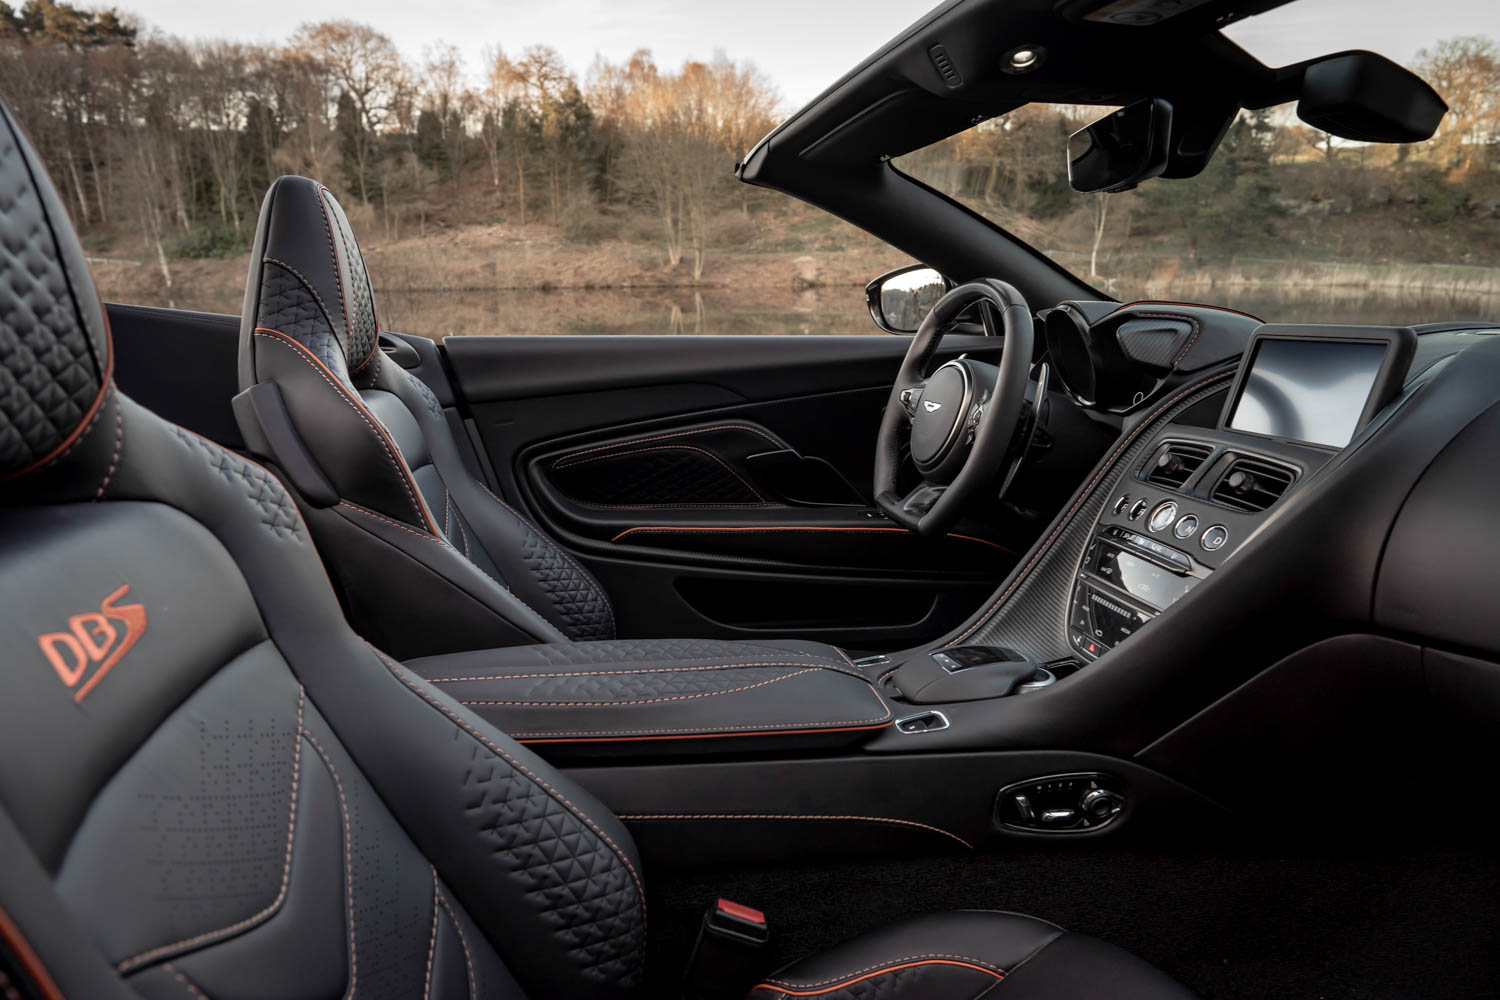 Aston Martin DBS Superleggara Volante interior